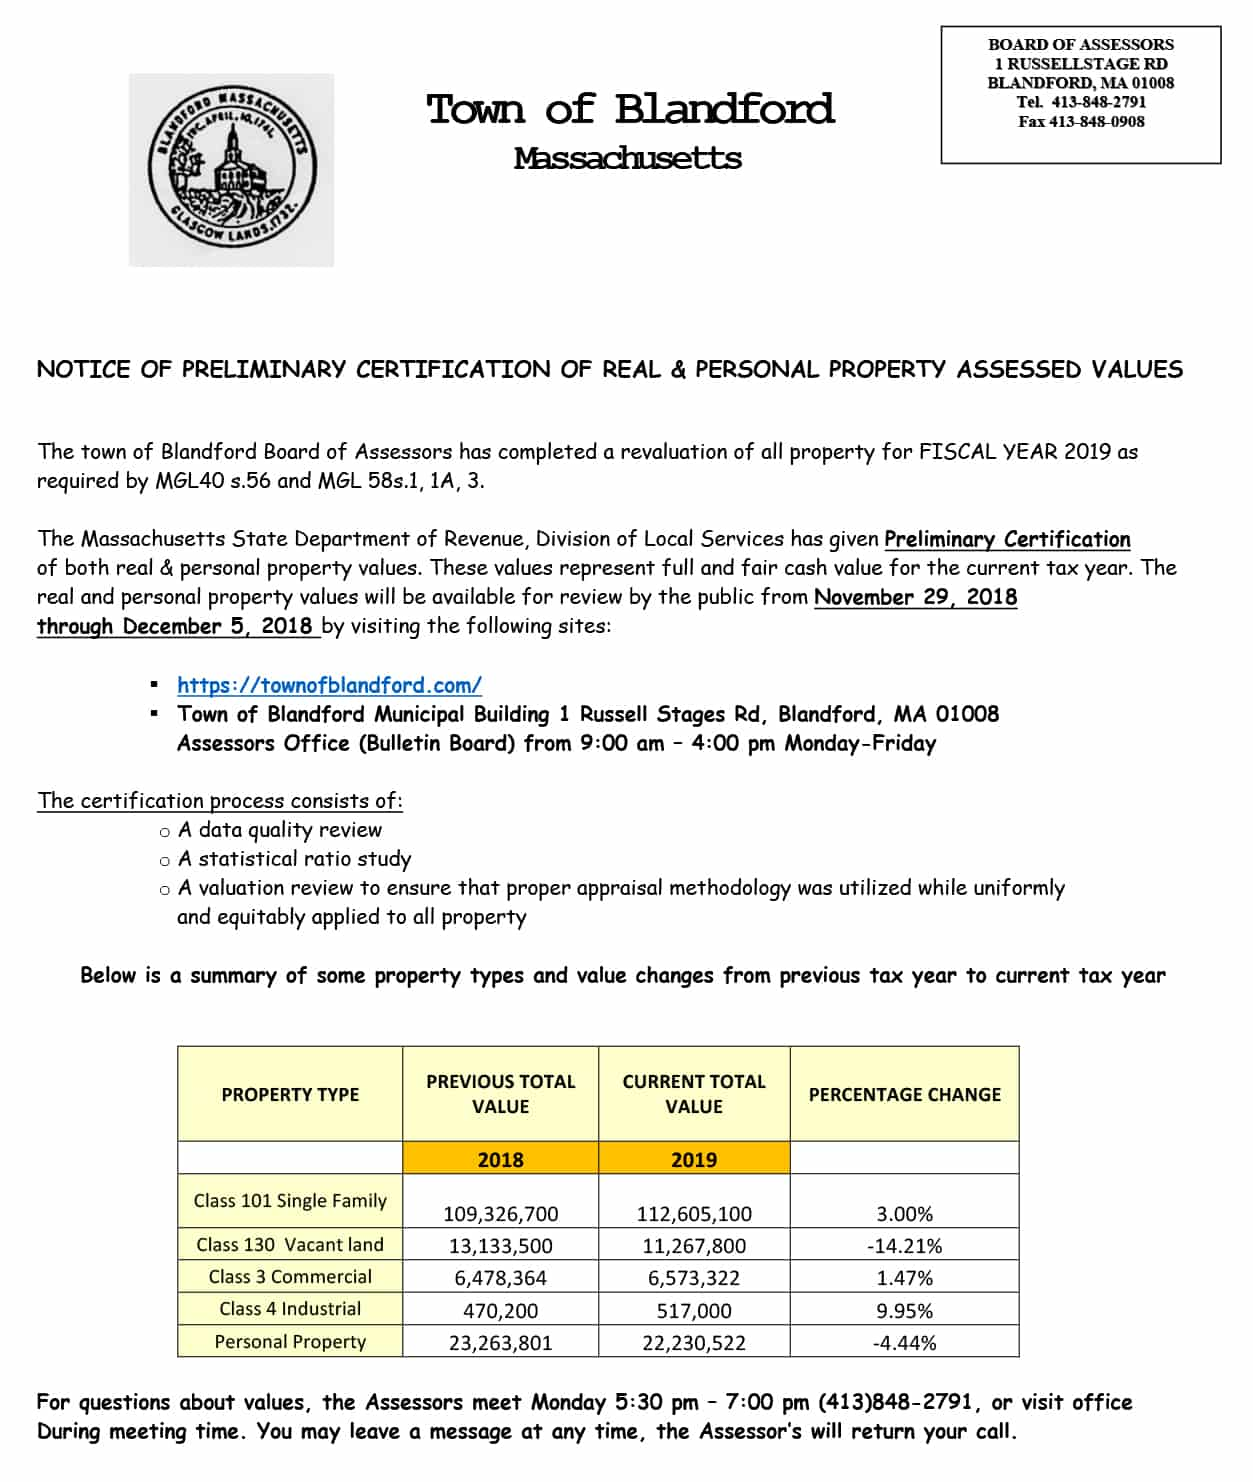 Notice regarding Proposed Real Estate Values for FY2019